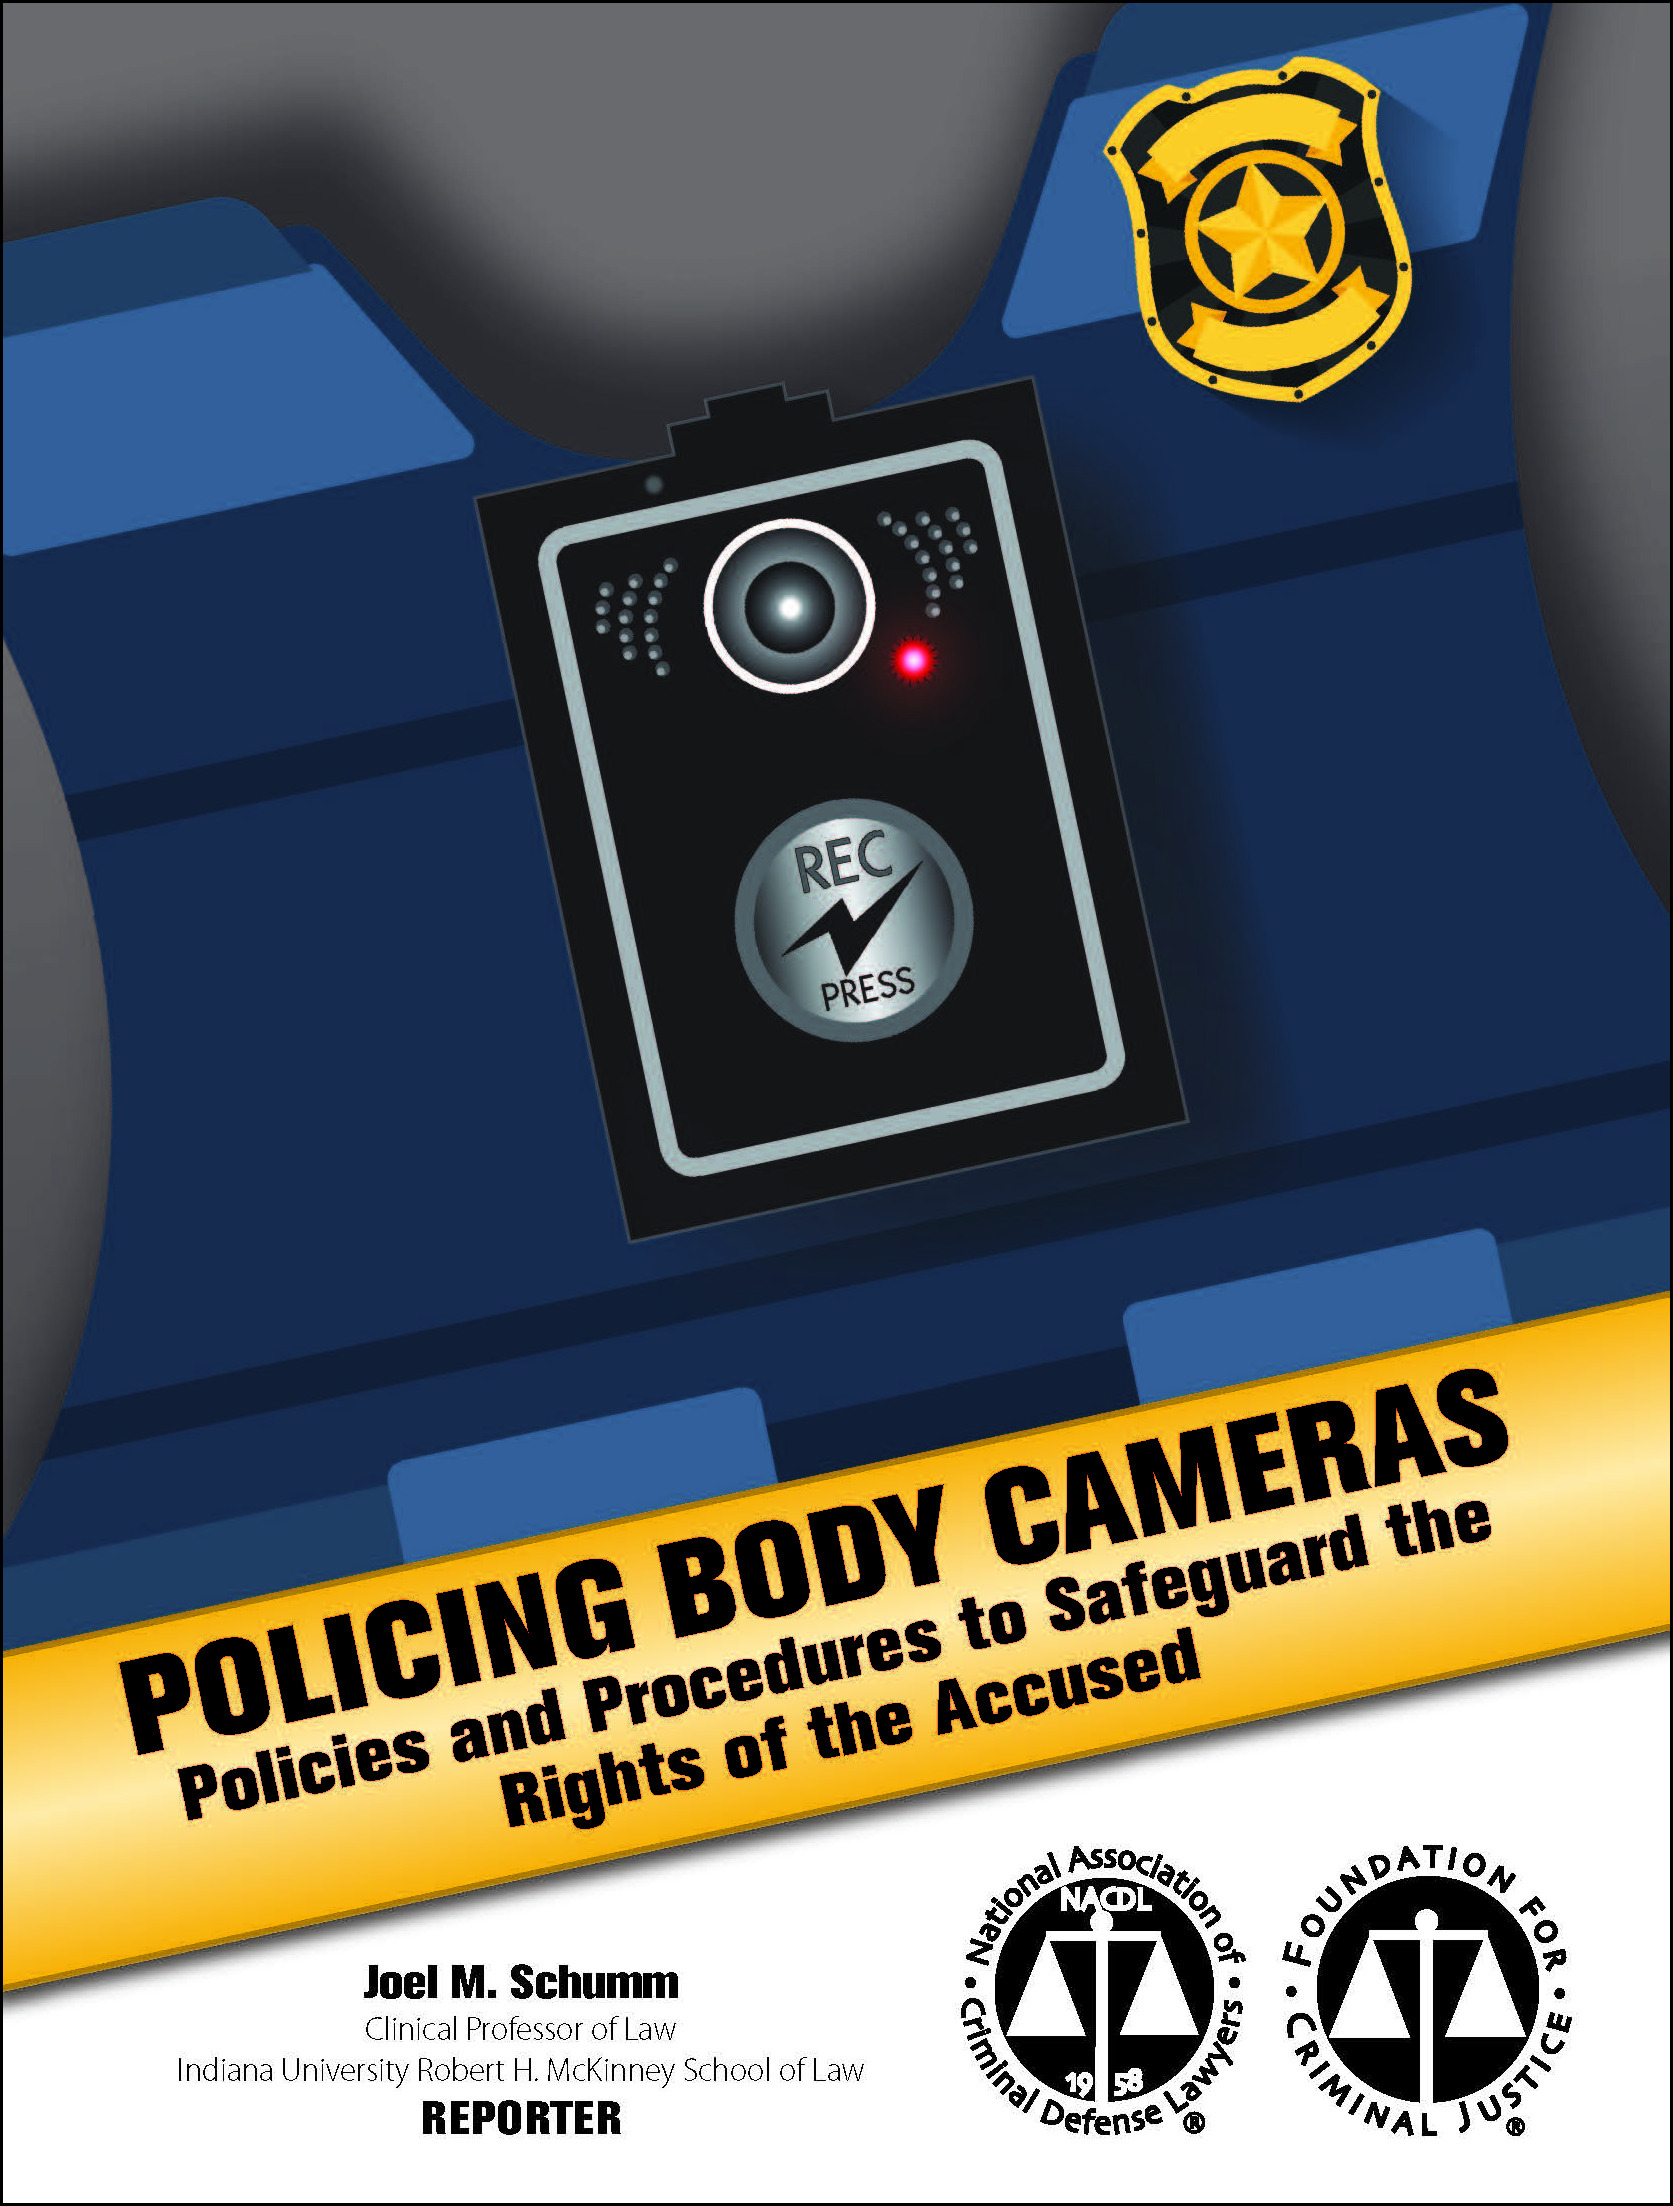 Policing Body Cameras: Policies and Procedures to Safeguard the Rights of the Accused Cover